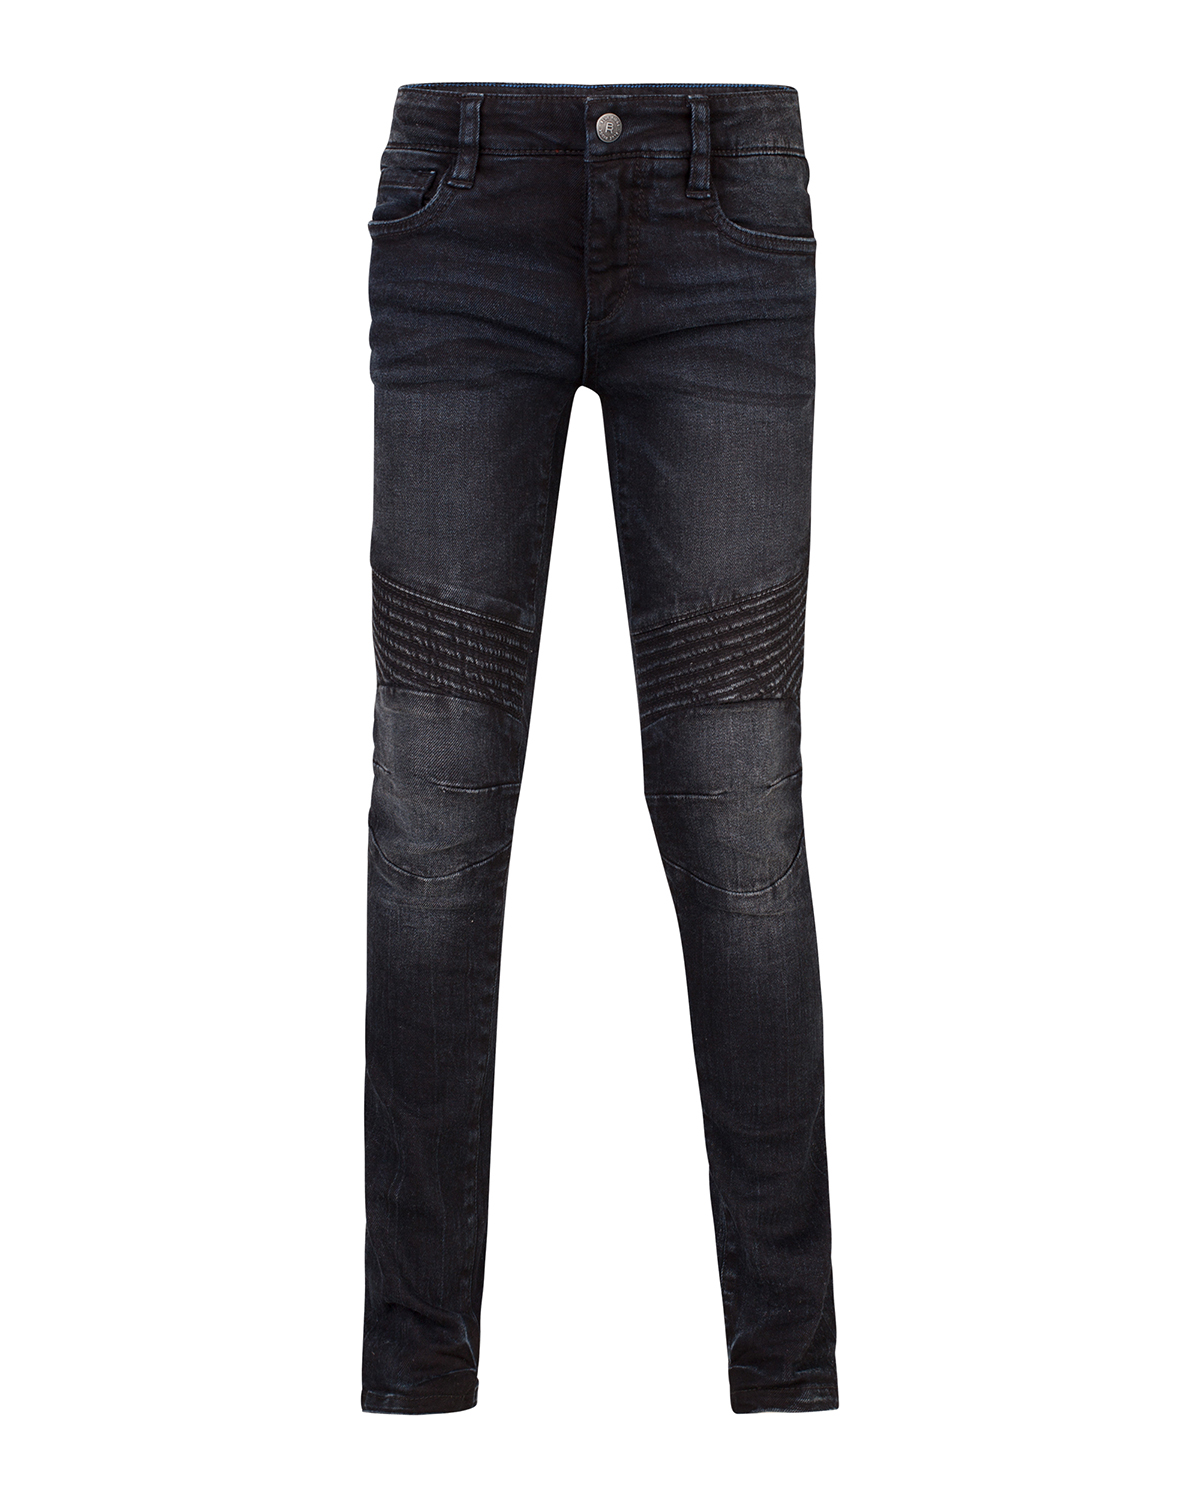 Jongens skinny power stretch biker jeans